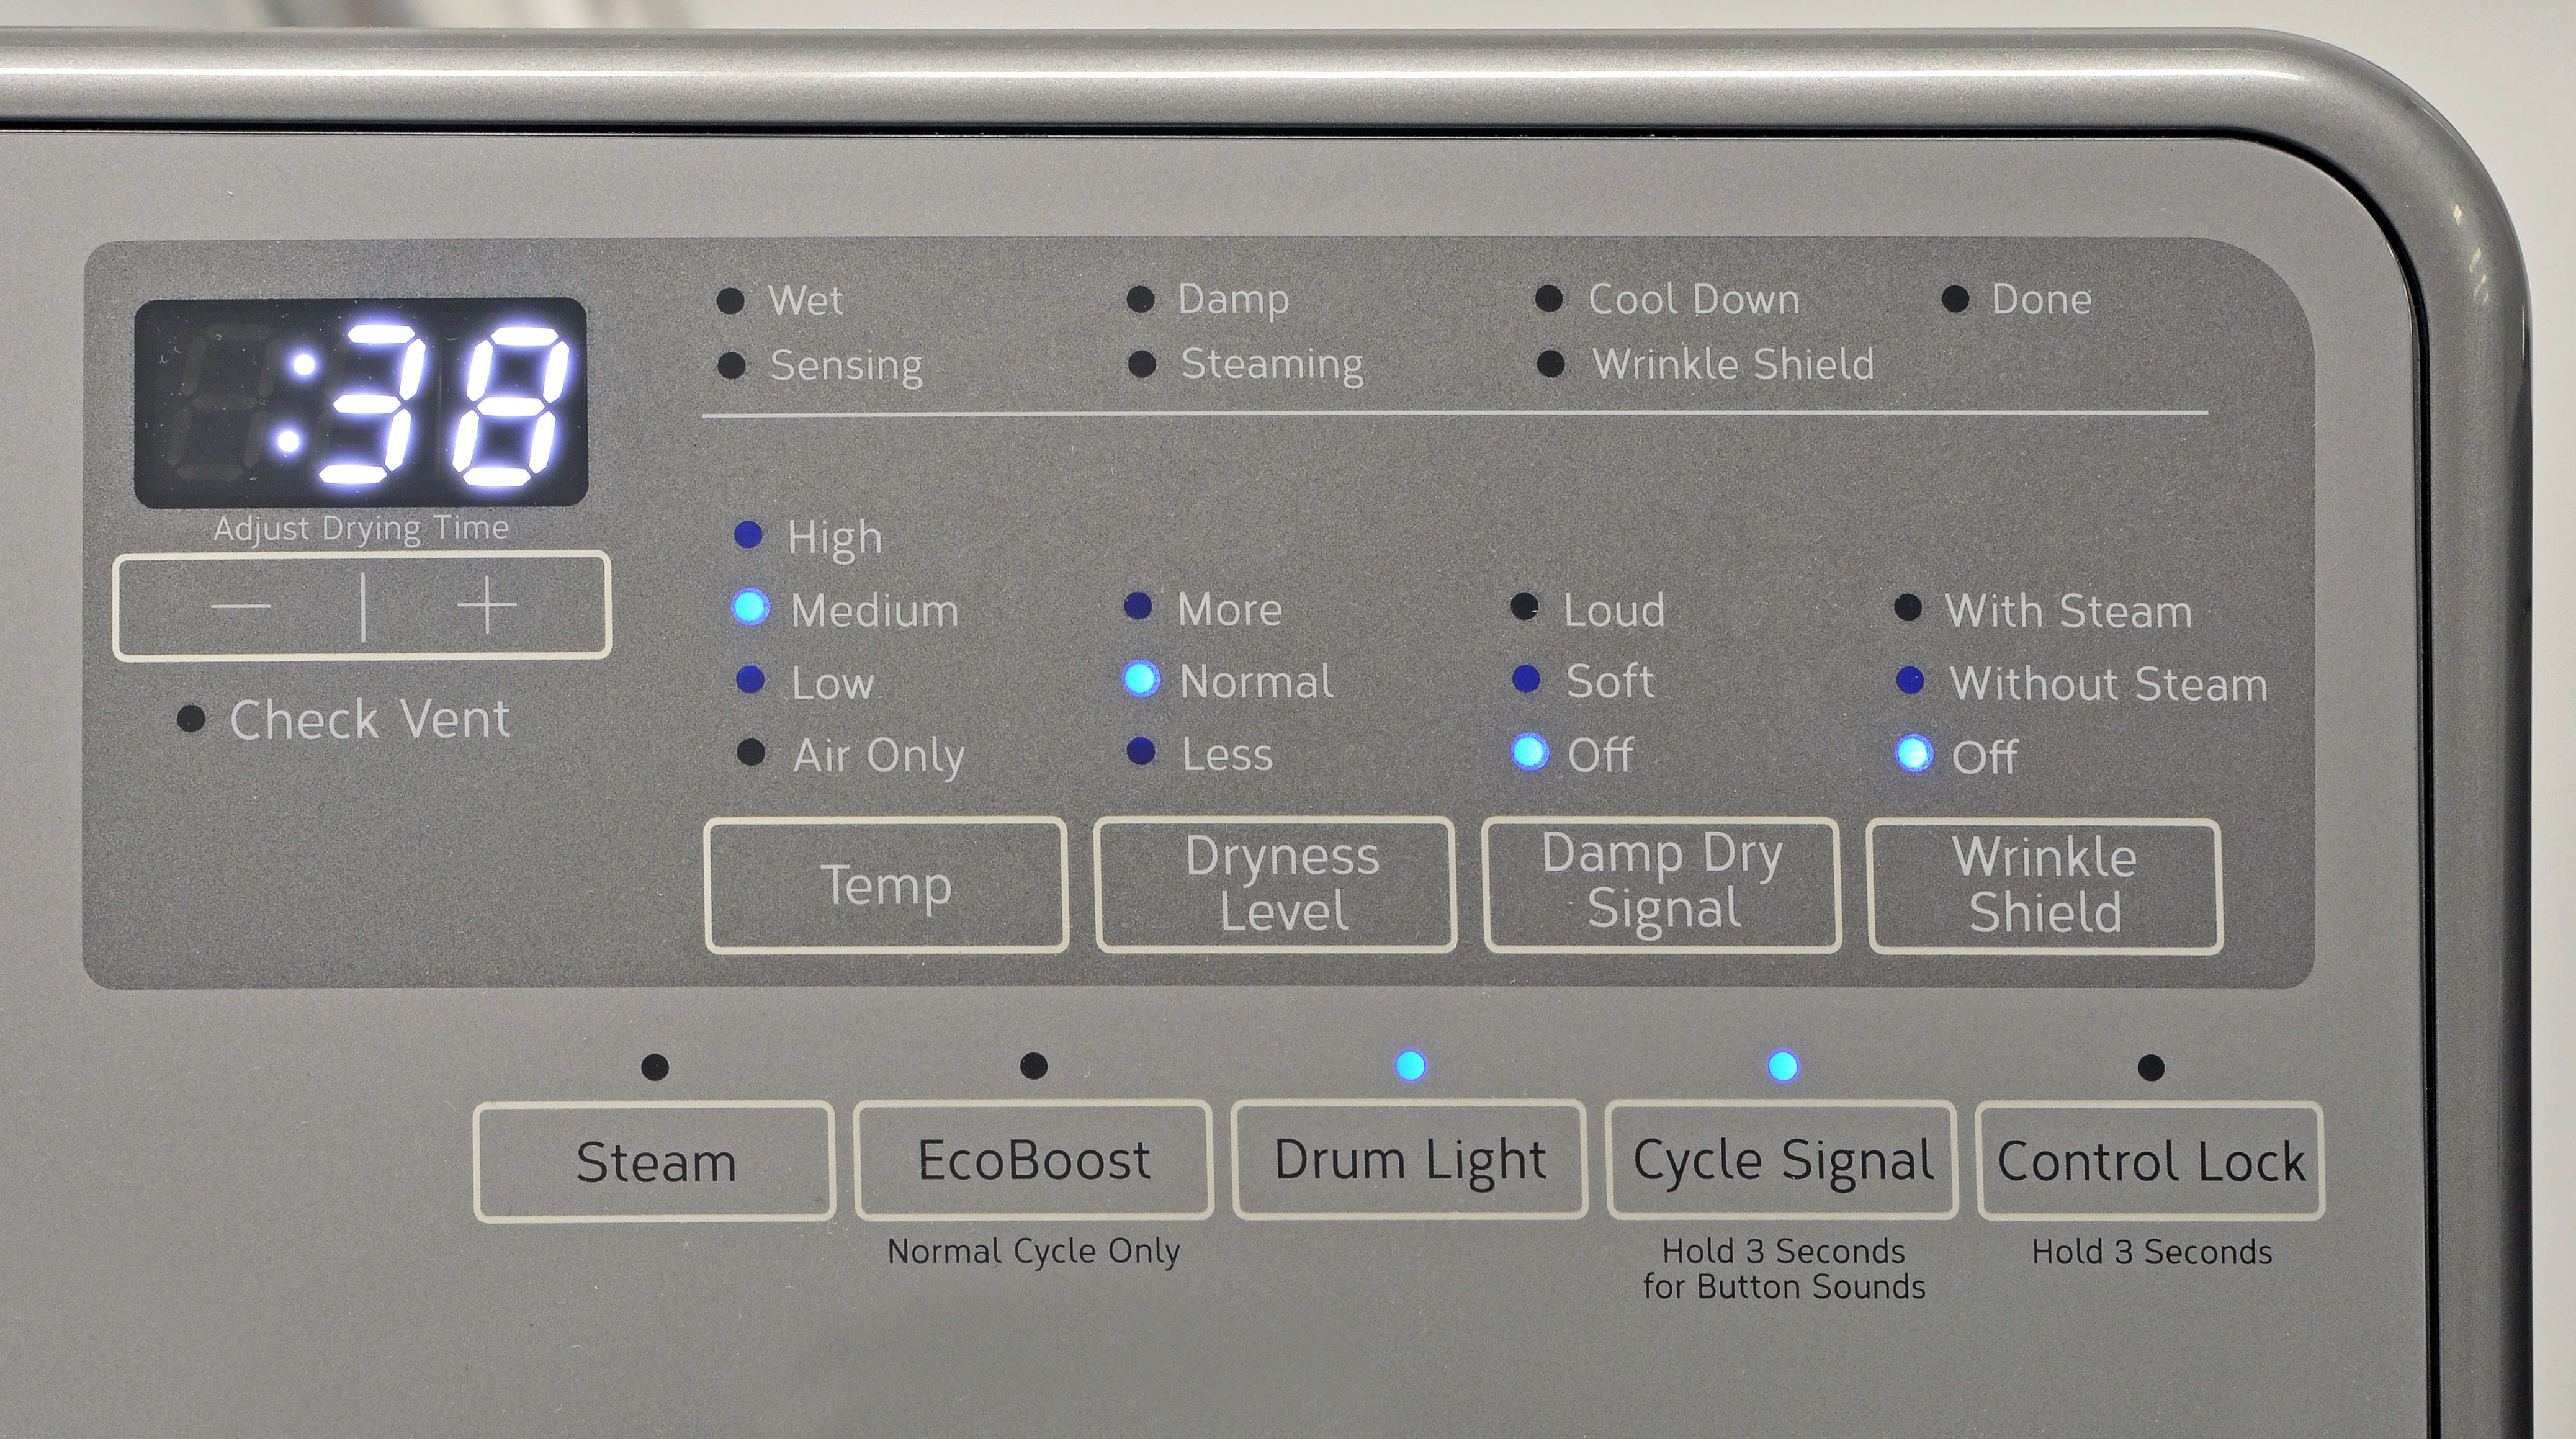 The Whirlpool 90HE series dryer's feature list and customization options are definitely slimmer than on many other comparable dryers, but you still get some useful options to choose from.